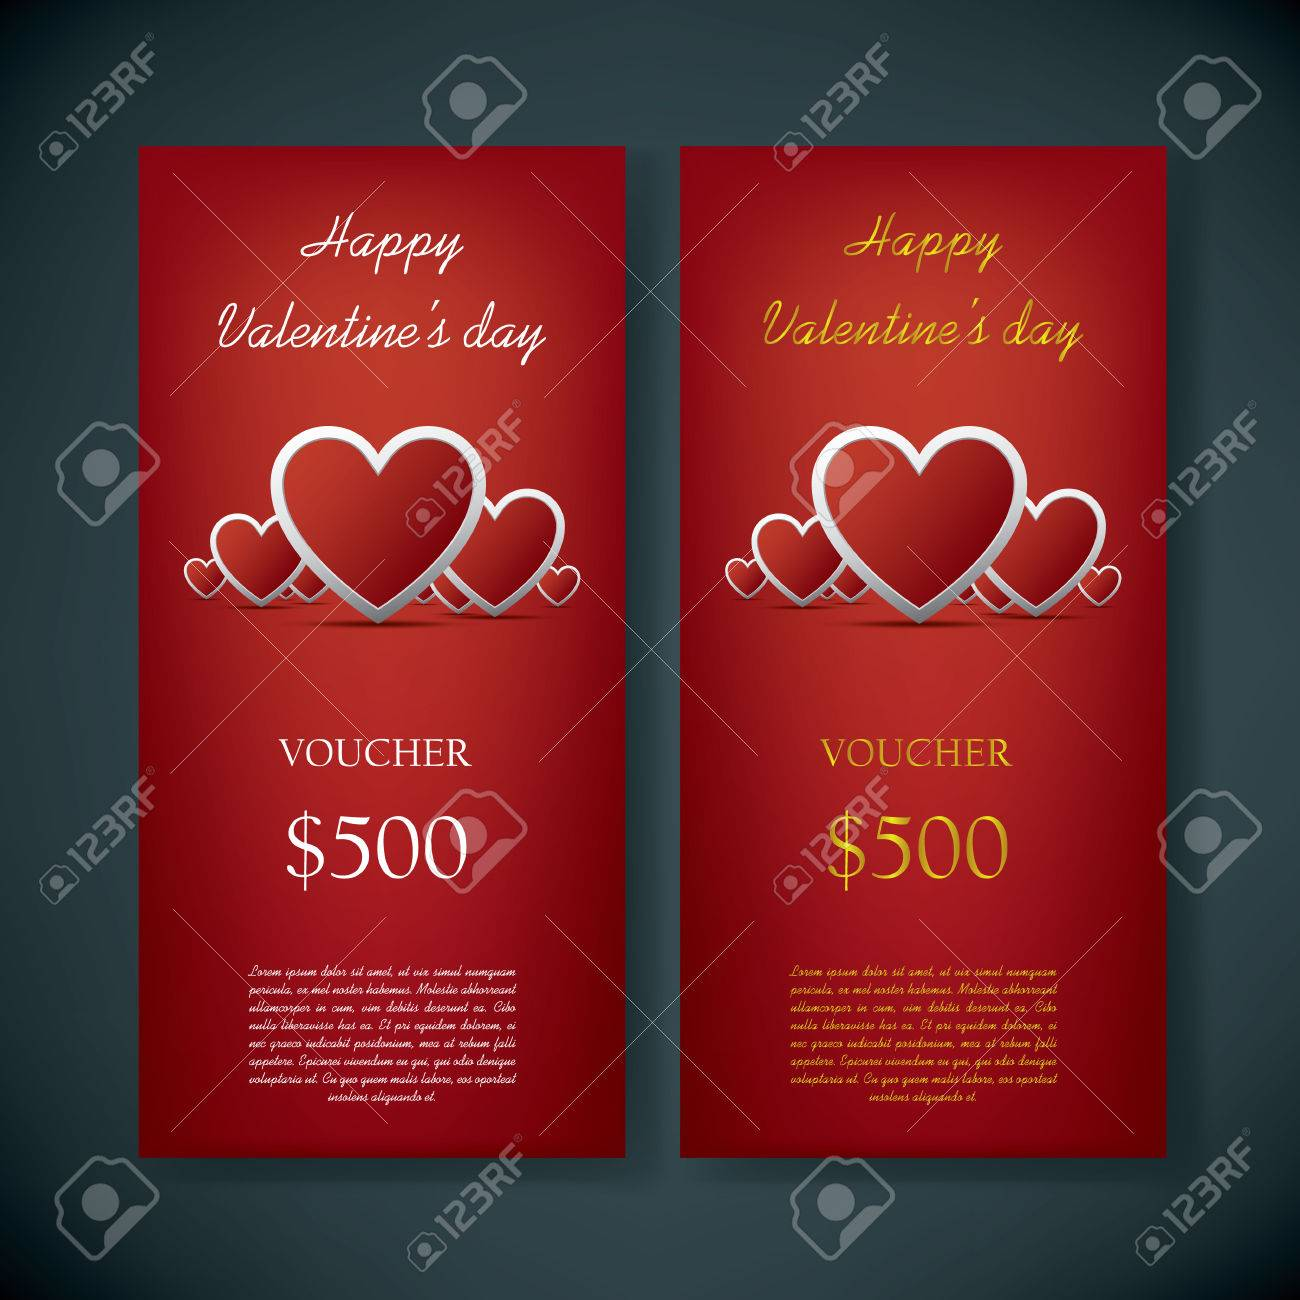 Valentine S Day Gift Card Voucher Template With Traditional